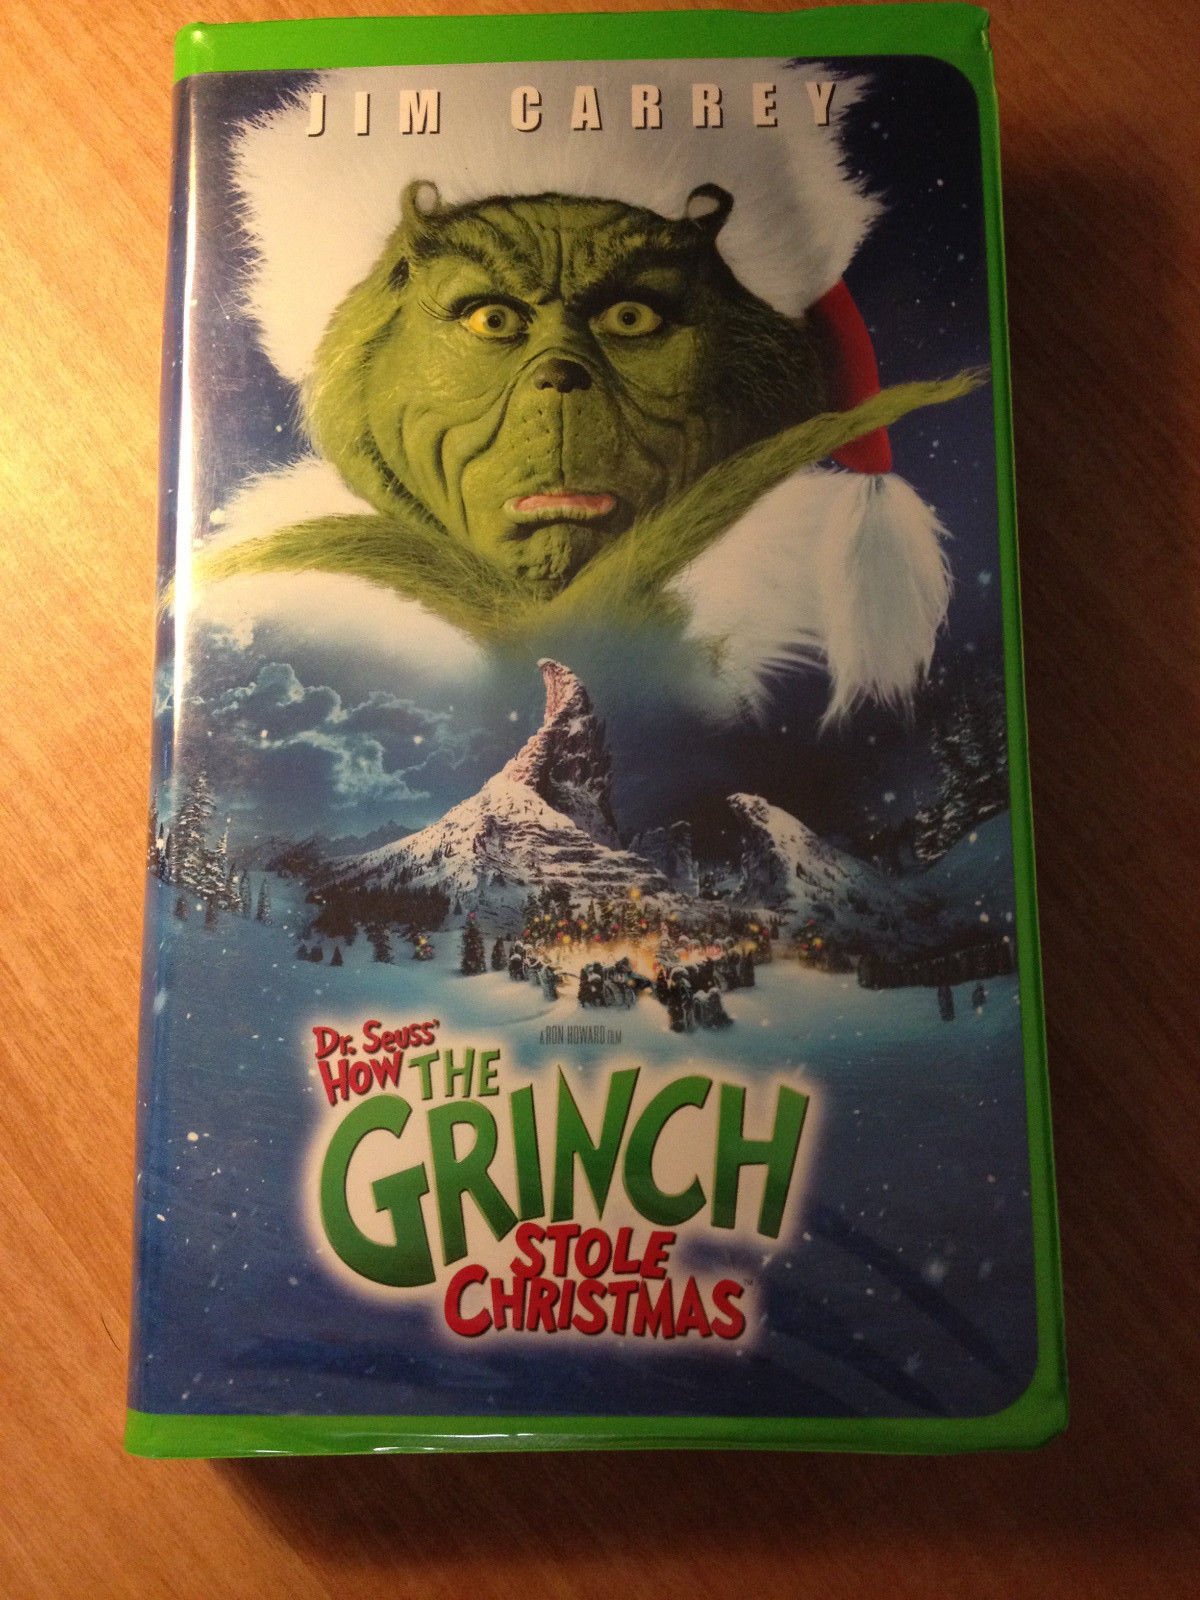 red fbi warnings the grinch vhs - How The Grinch Stole Christmas Vhs